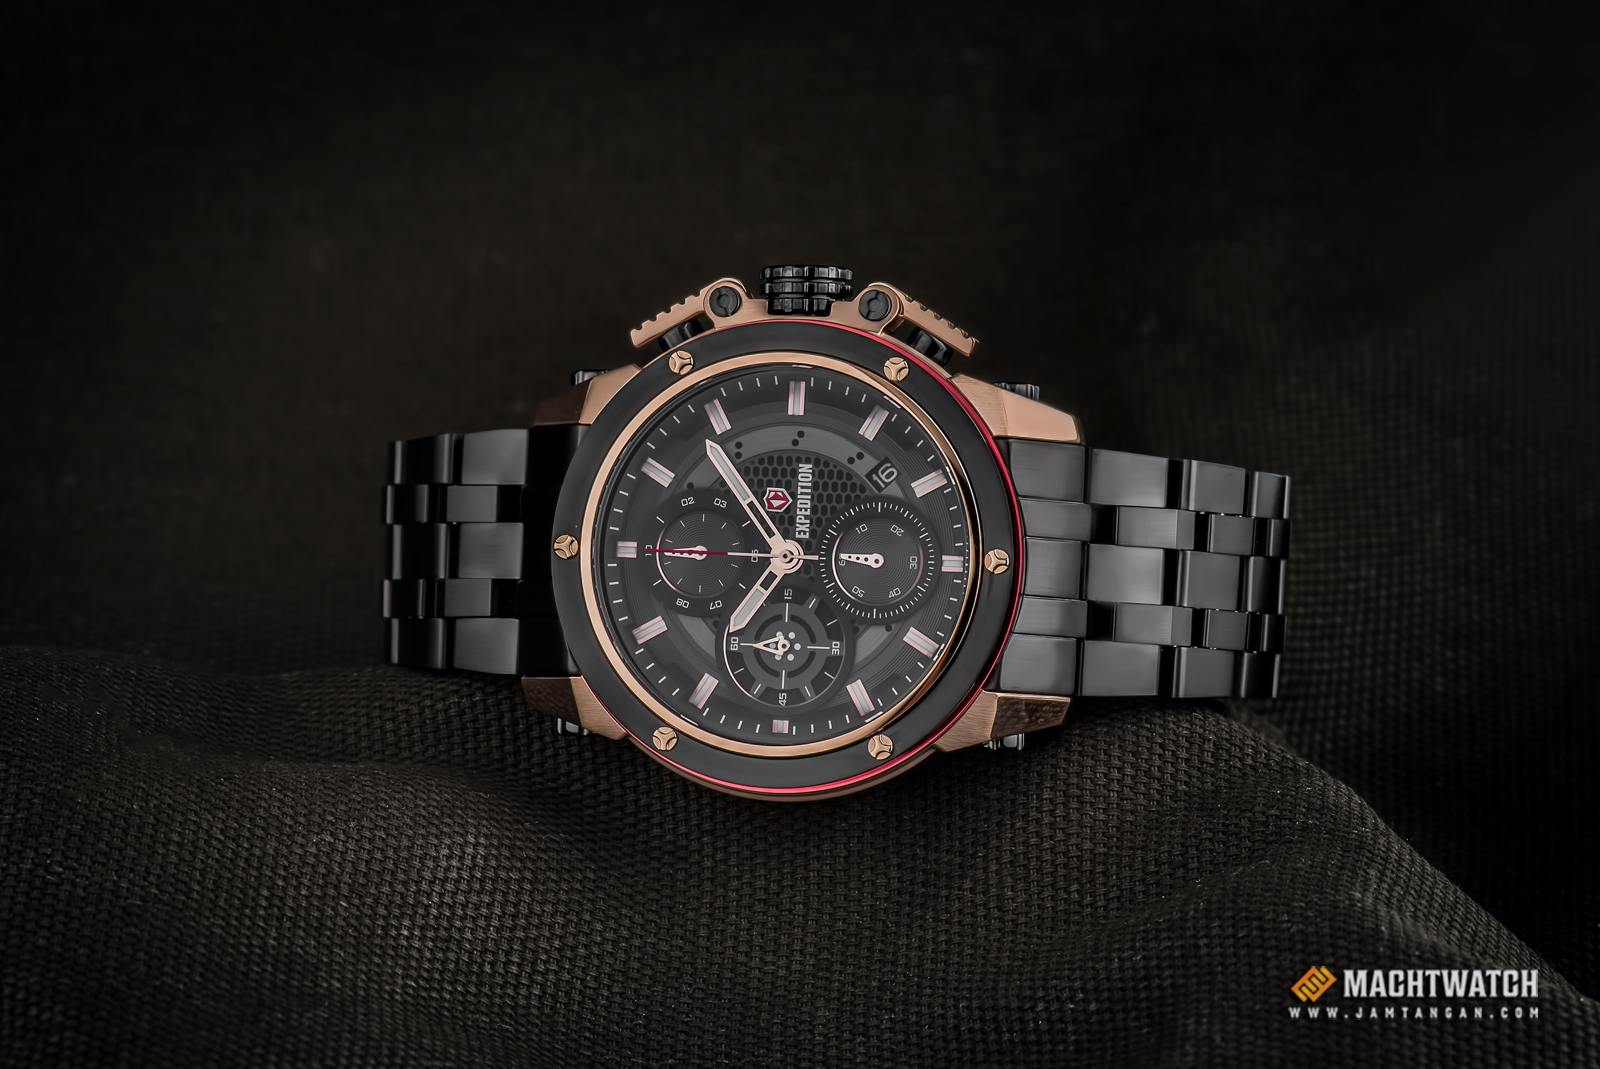 Expedition E 6748 MC BBRBA Man Chronograph Black Dial Black Stainless Steel Strap Machtwatch